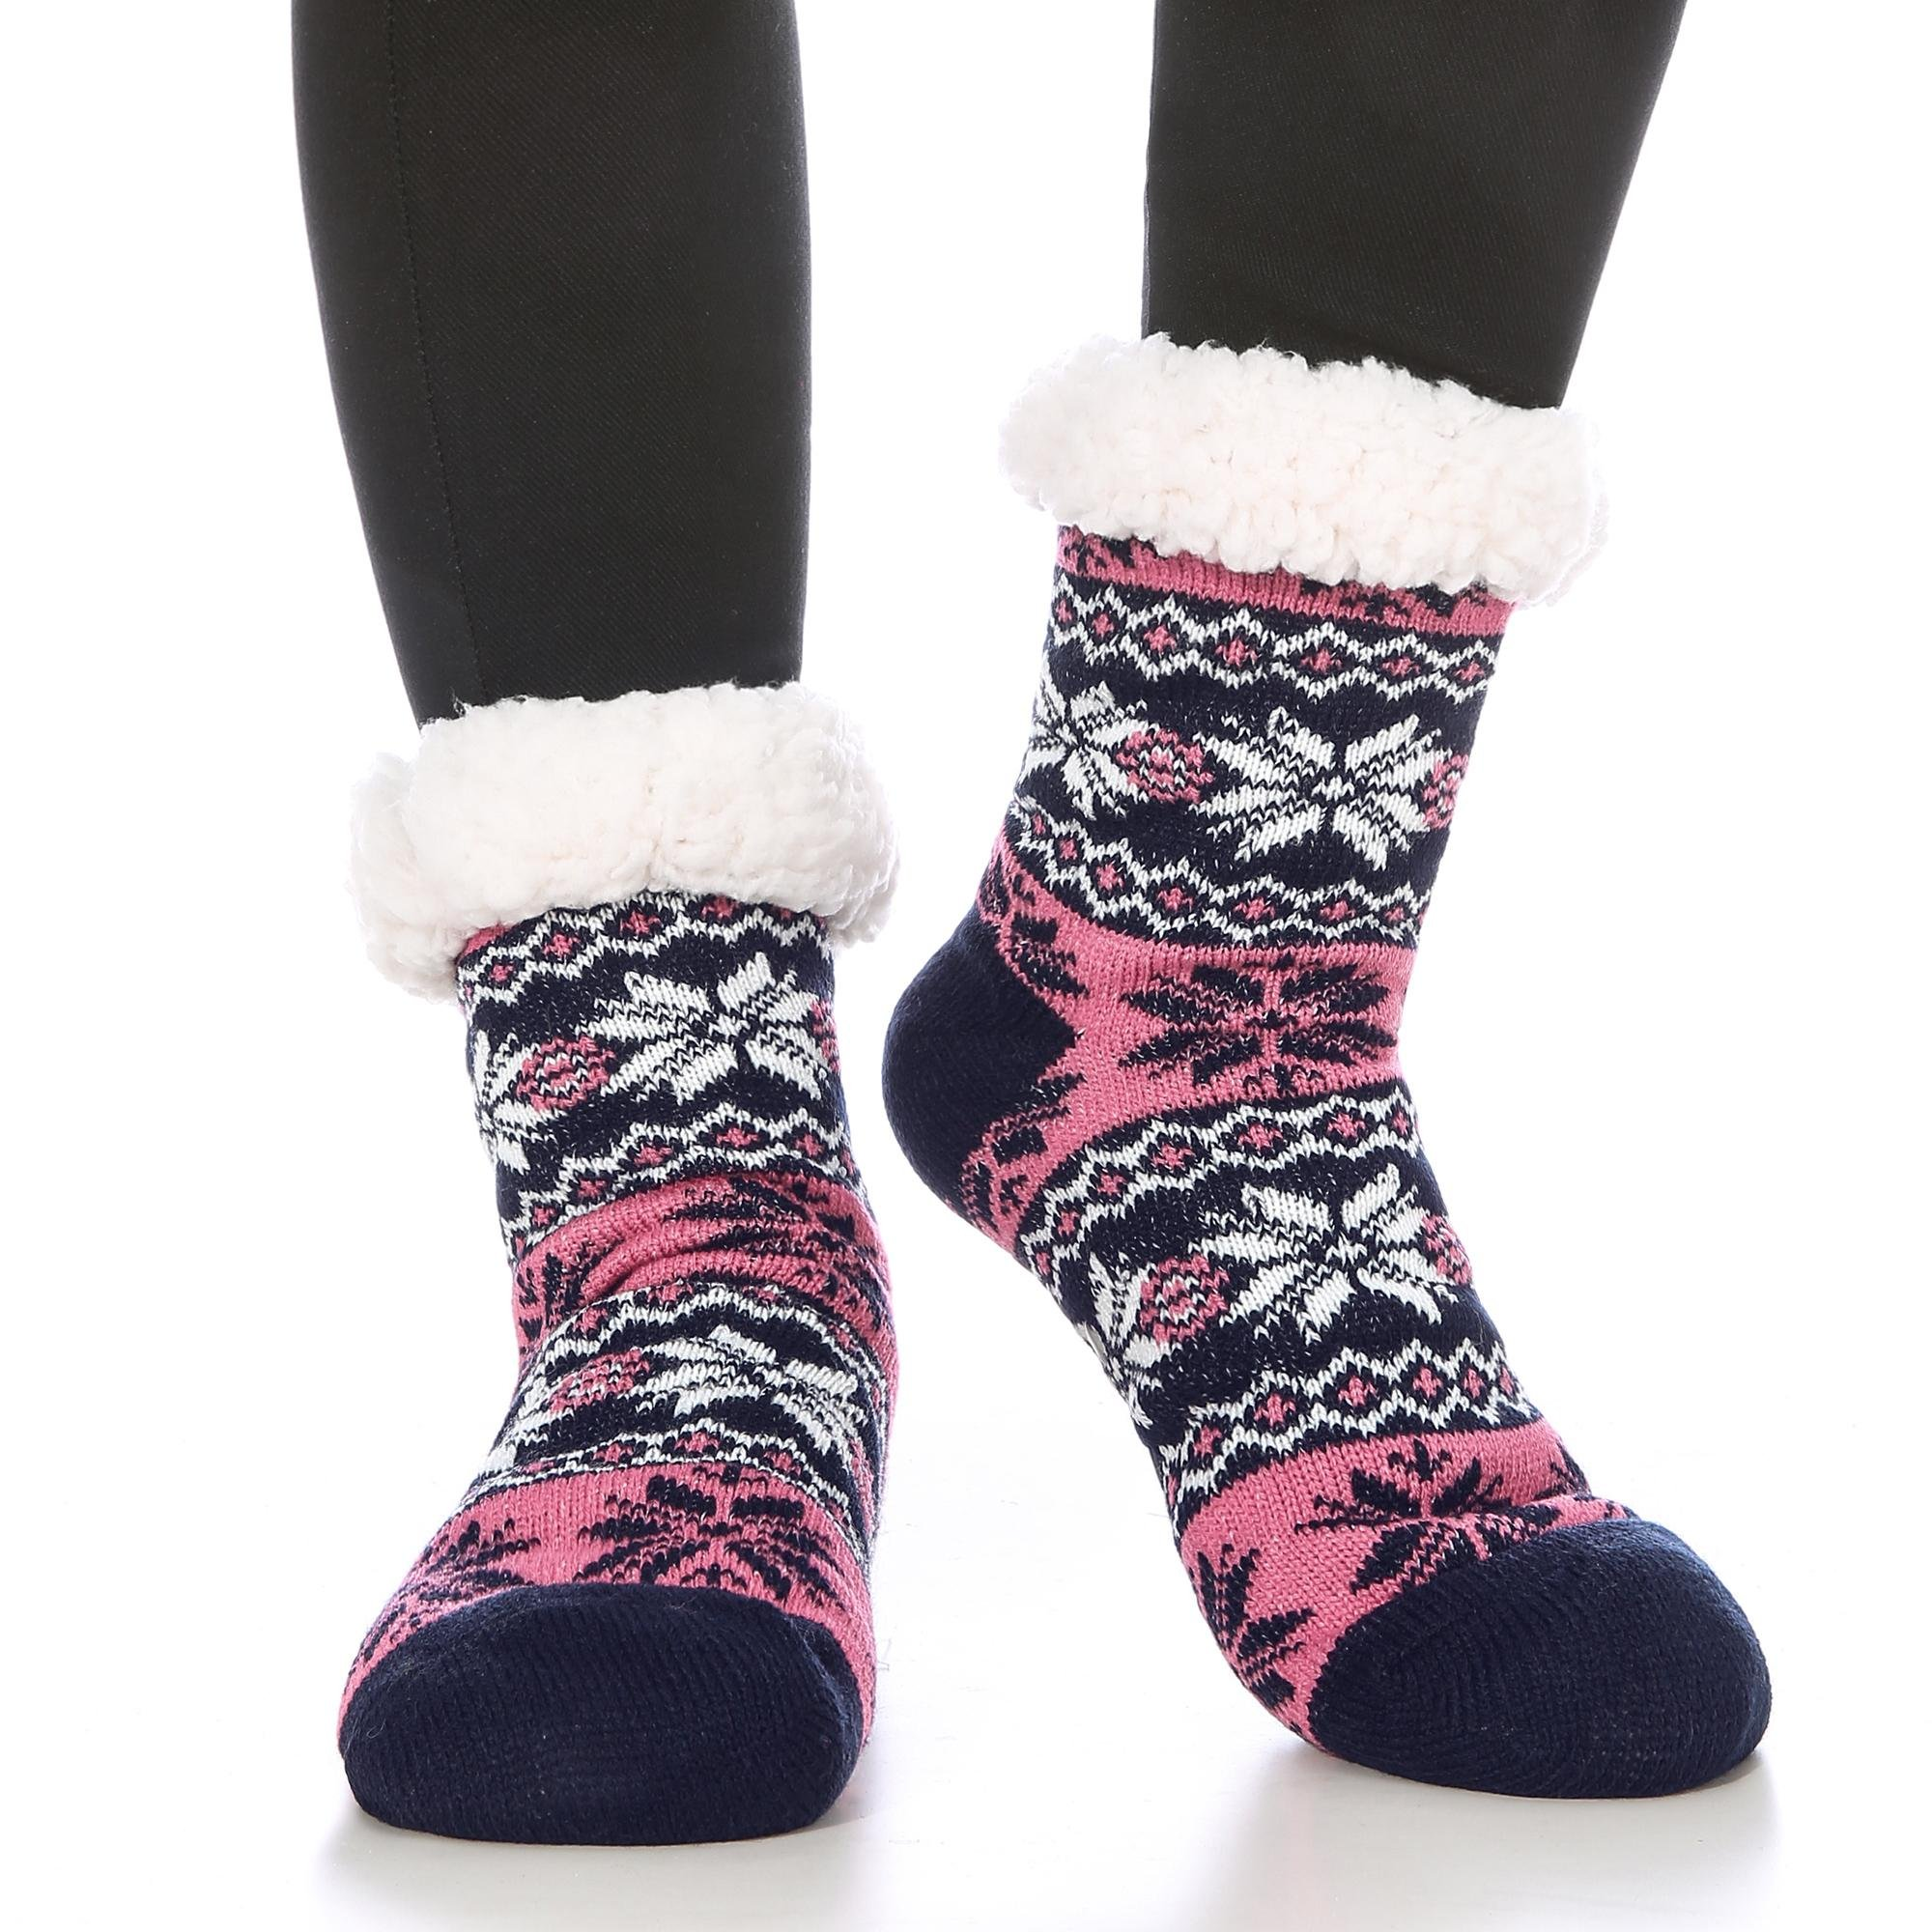 Women's Slipper Socks Fuzzy Fleece-lined Winter Warm Cozy Soft Knee High Christmas Gifts